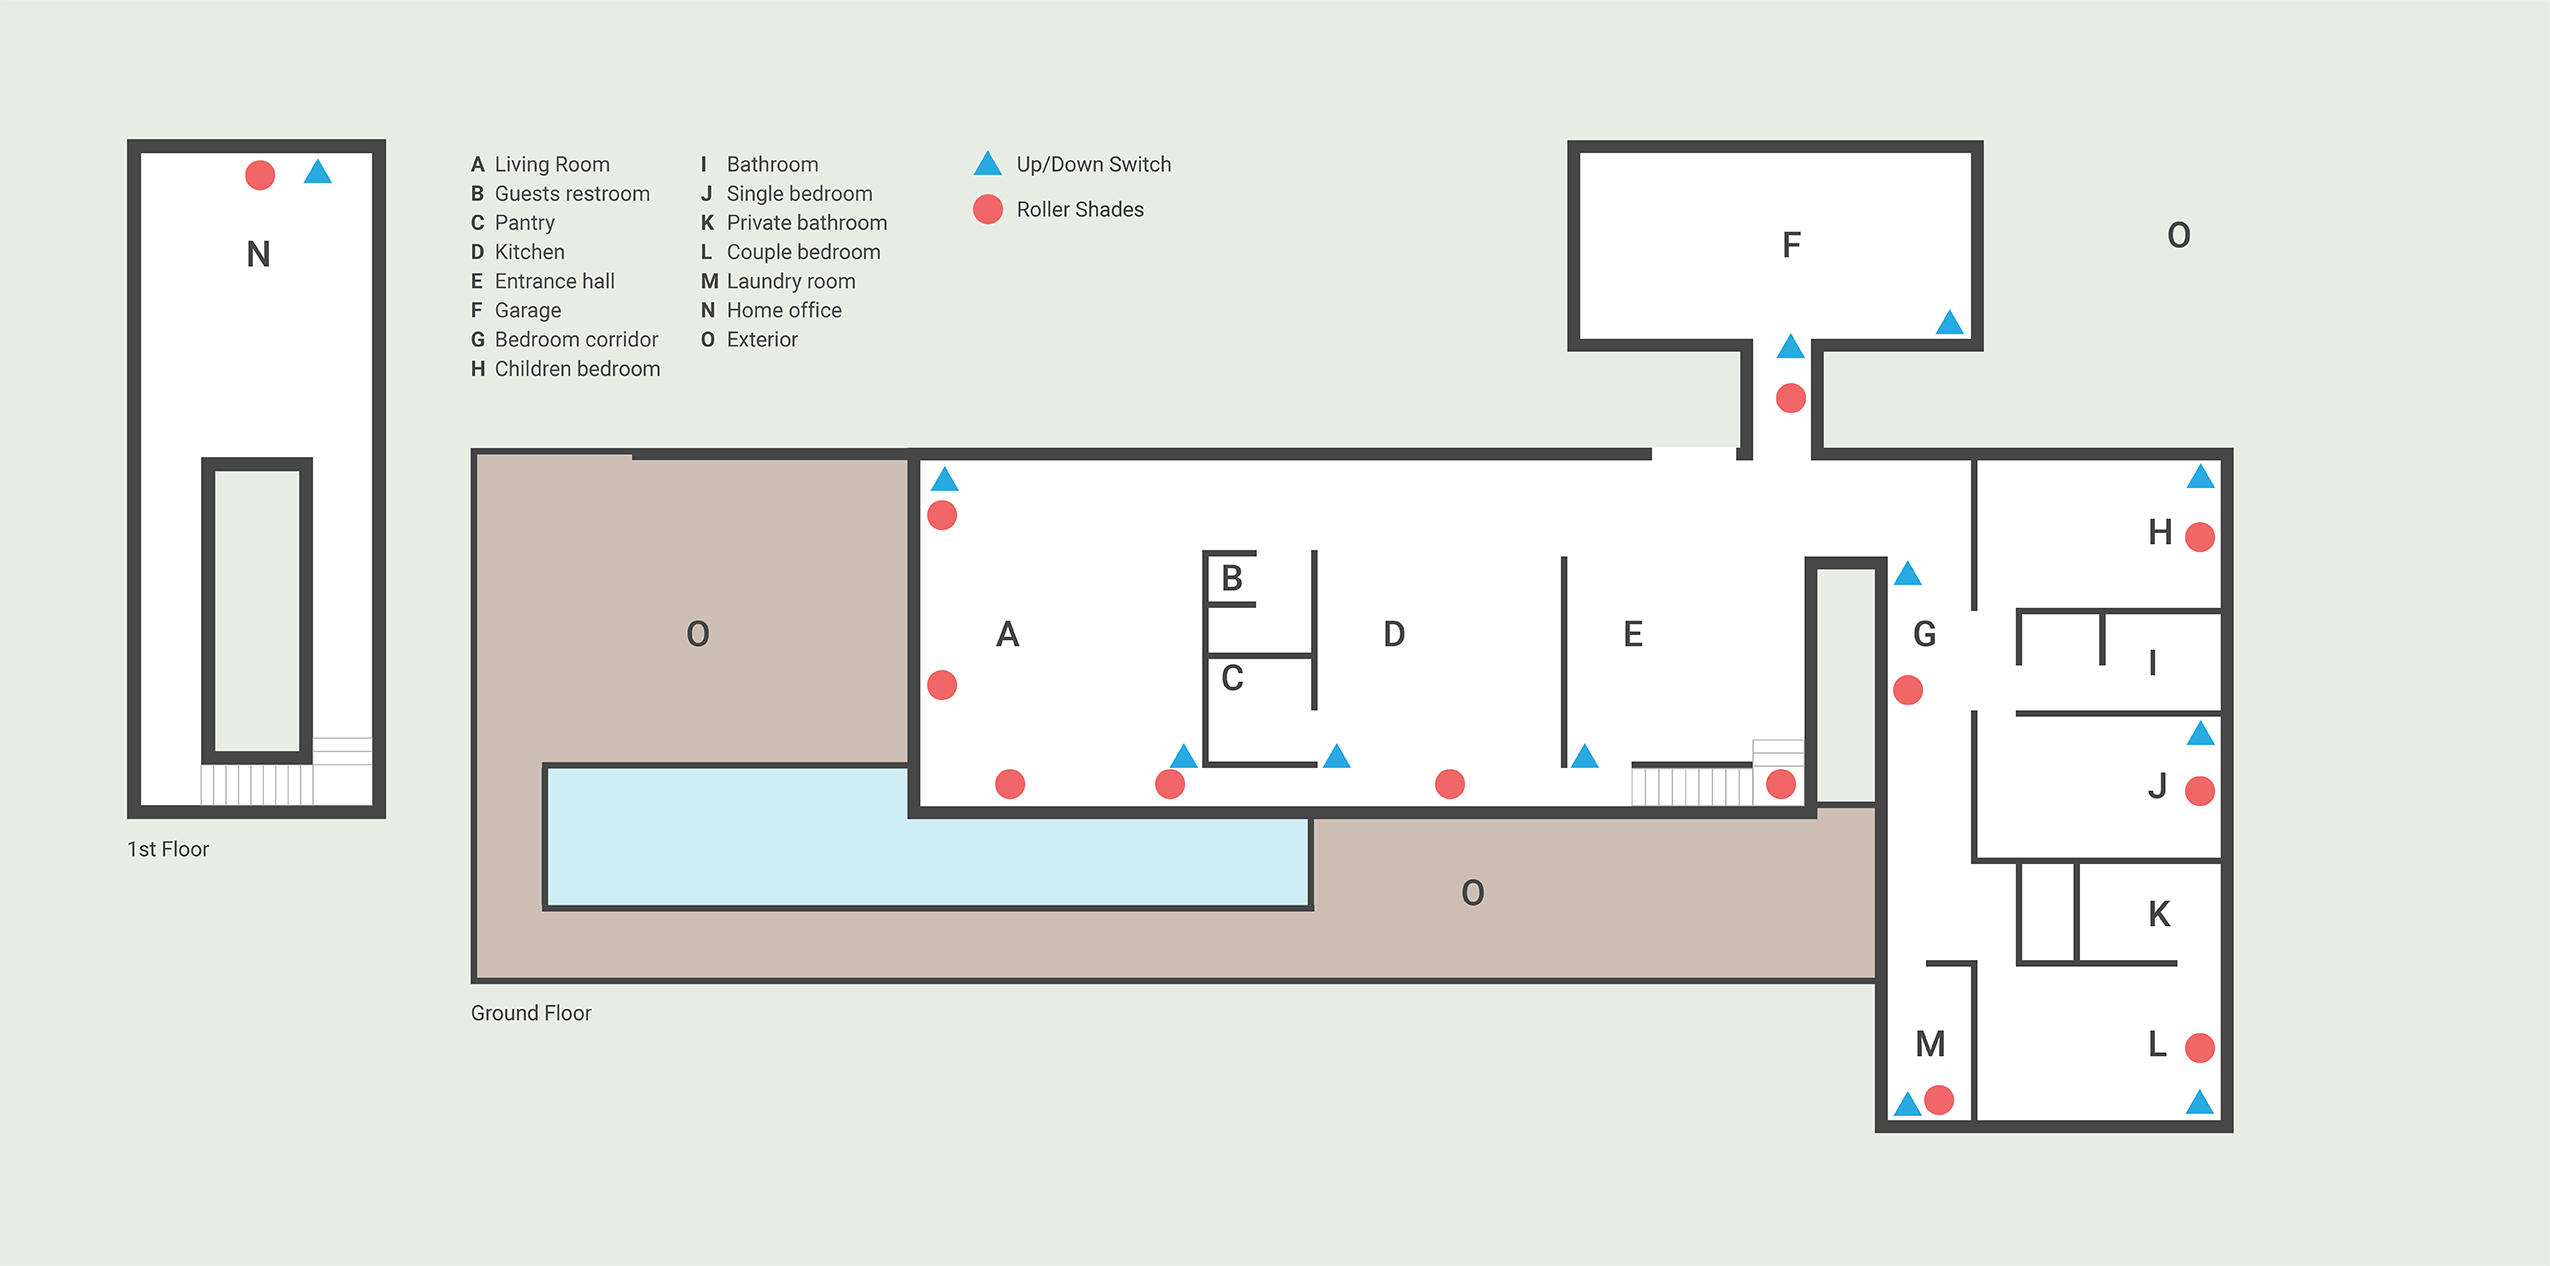 Devices Map - HOME I/O on bed map, bedroom map, portico map, exterior map, basement map, newfoundland and labrador map, security map, cafeteria map, secret passage map, fallout shelter map,